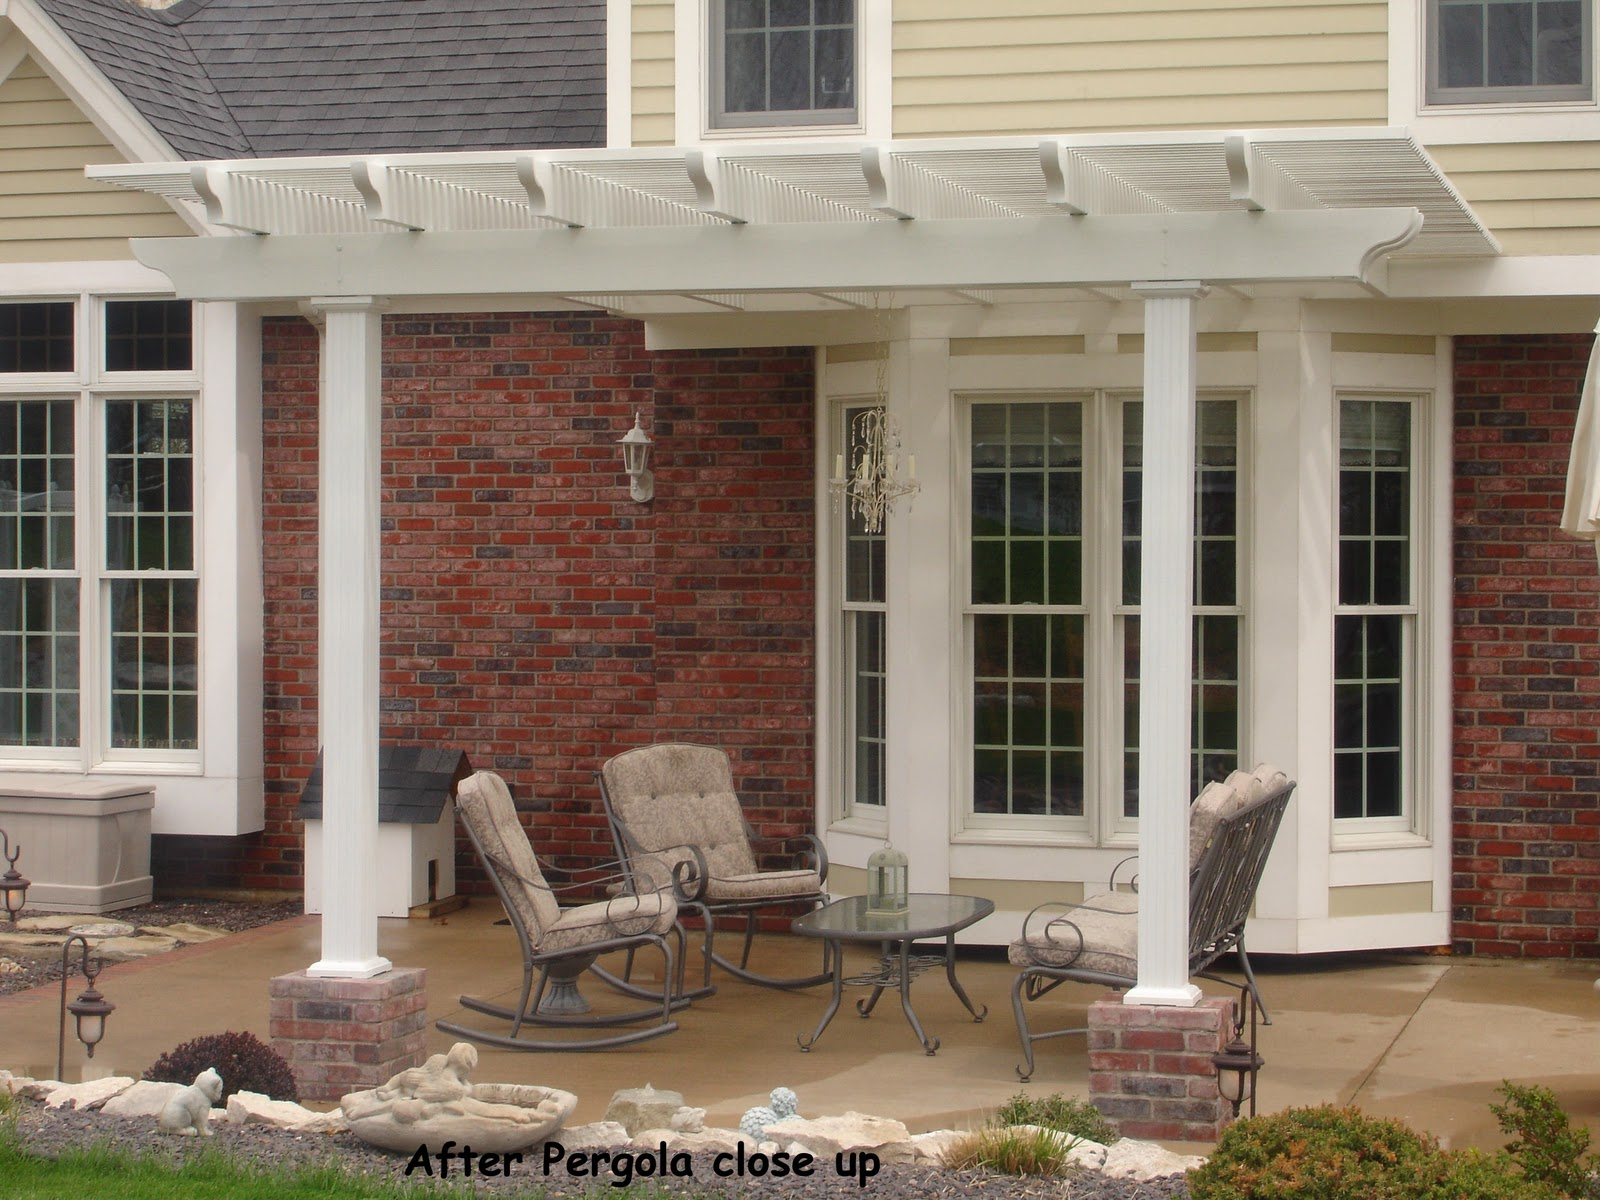 image click any columns twice porch for install vaughan a maple in much mississauga gta style deck installed column railings railing aluminum